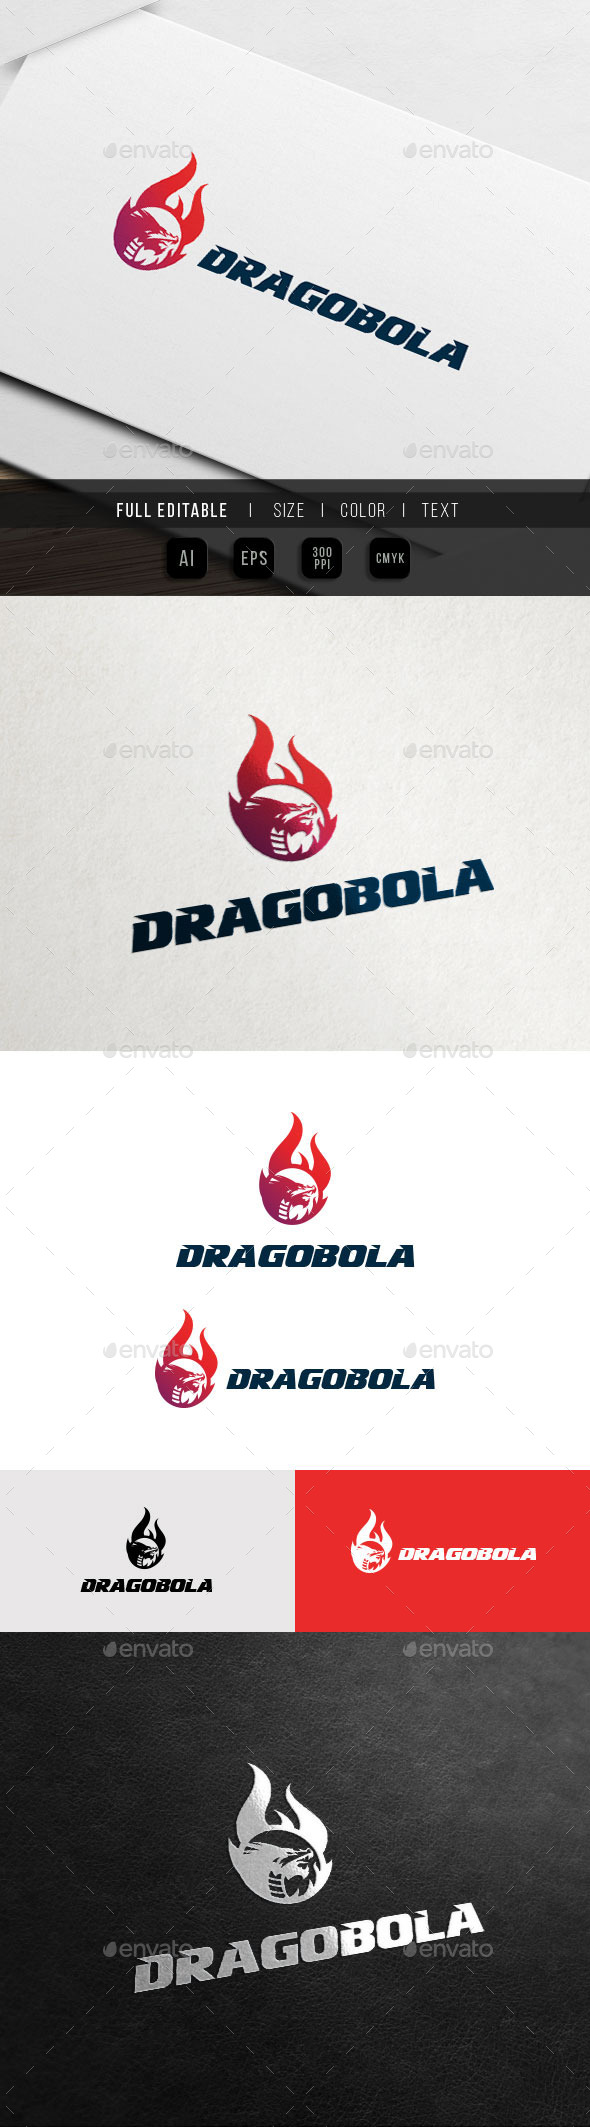 Dragon Flame - Fire Ball - Game Team Logo - Crests Logo Templates